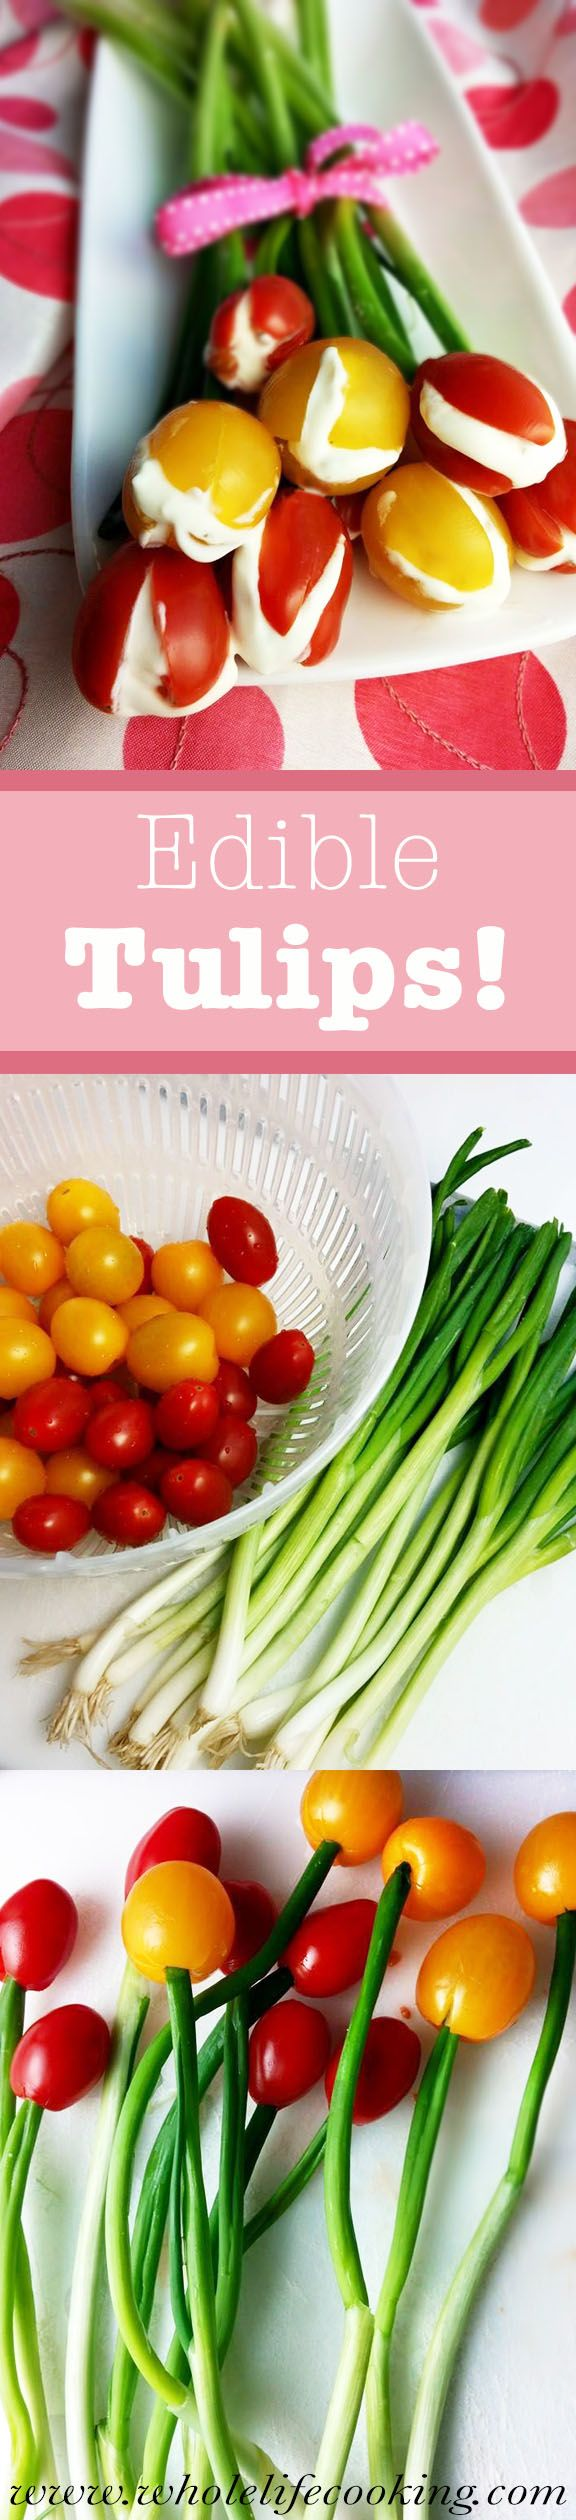 Edible Tulips by wholelifecooking: Great for Easter dinner. #Appetizer #Food_Art